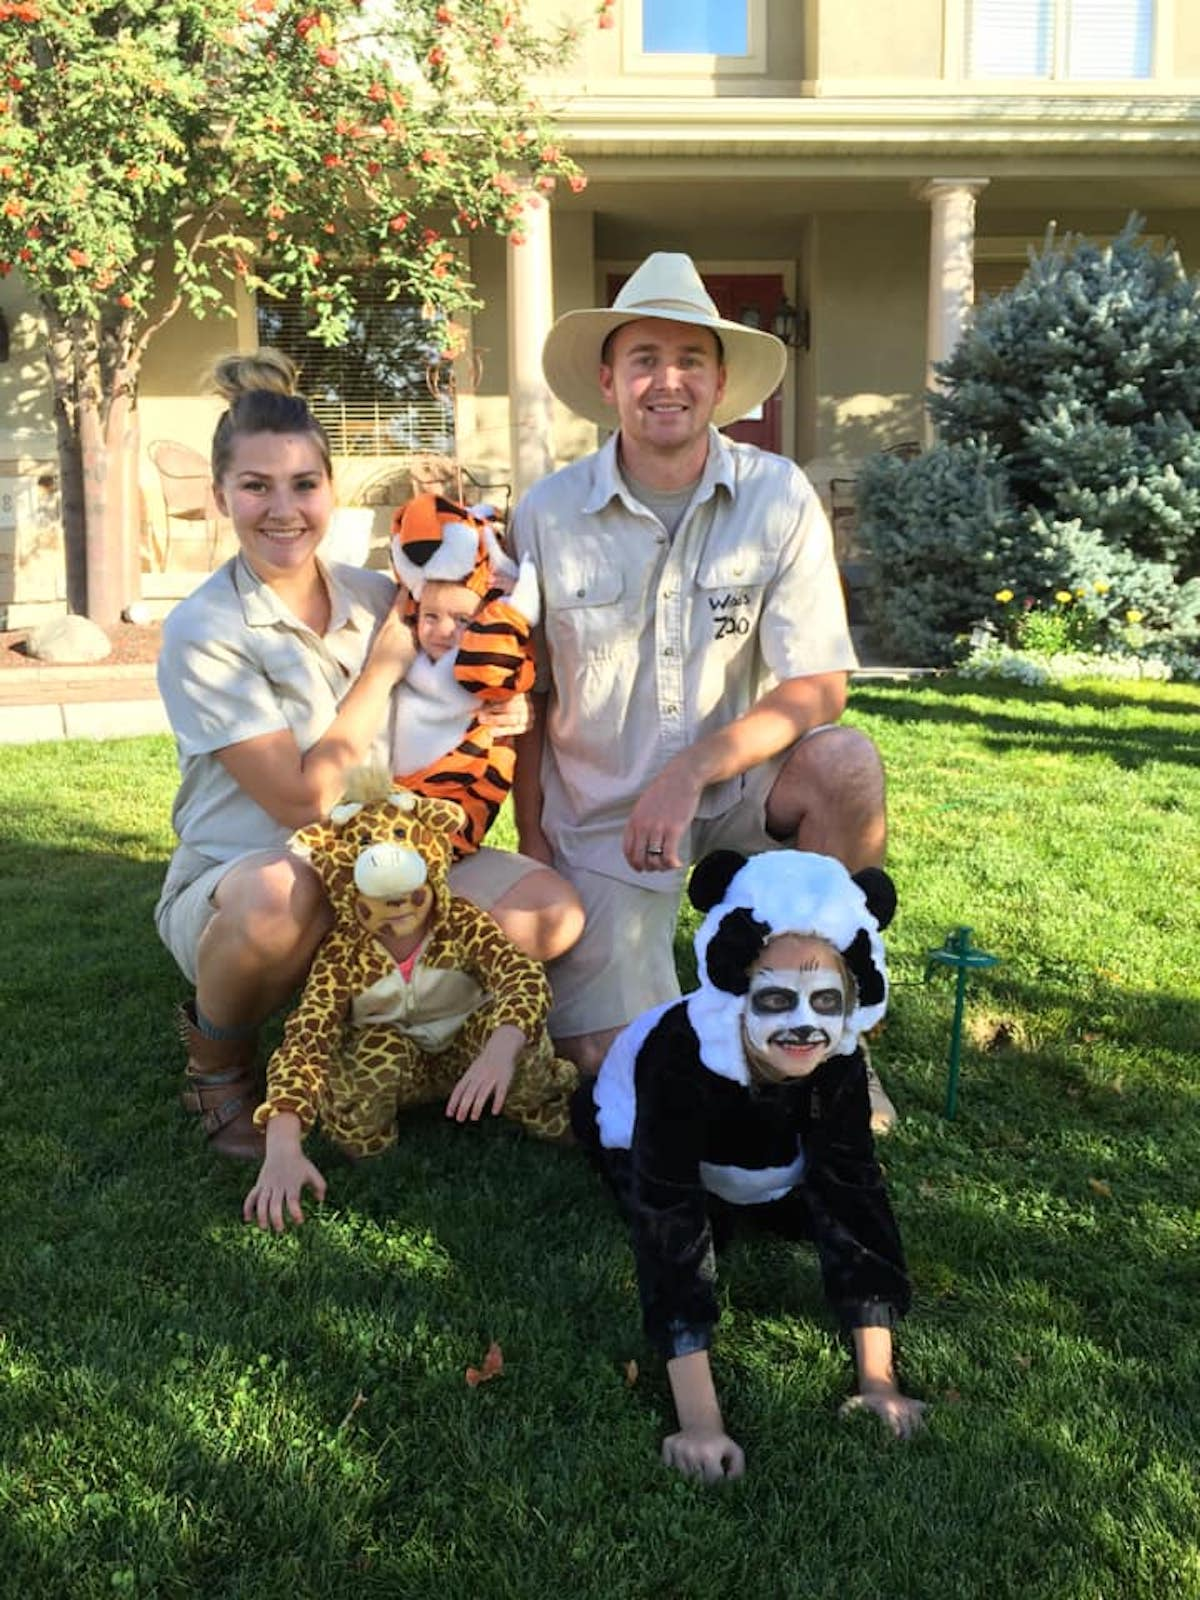 Family wearing zoo keeper and animal costumes smiles on front lawn.